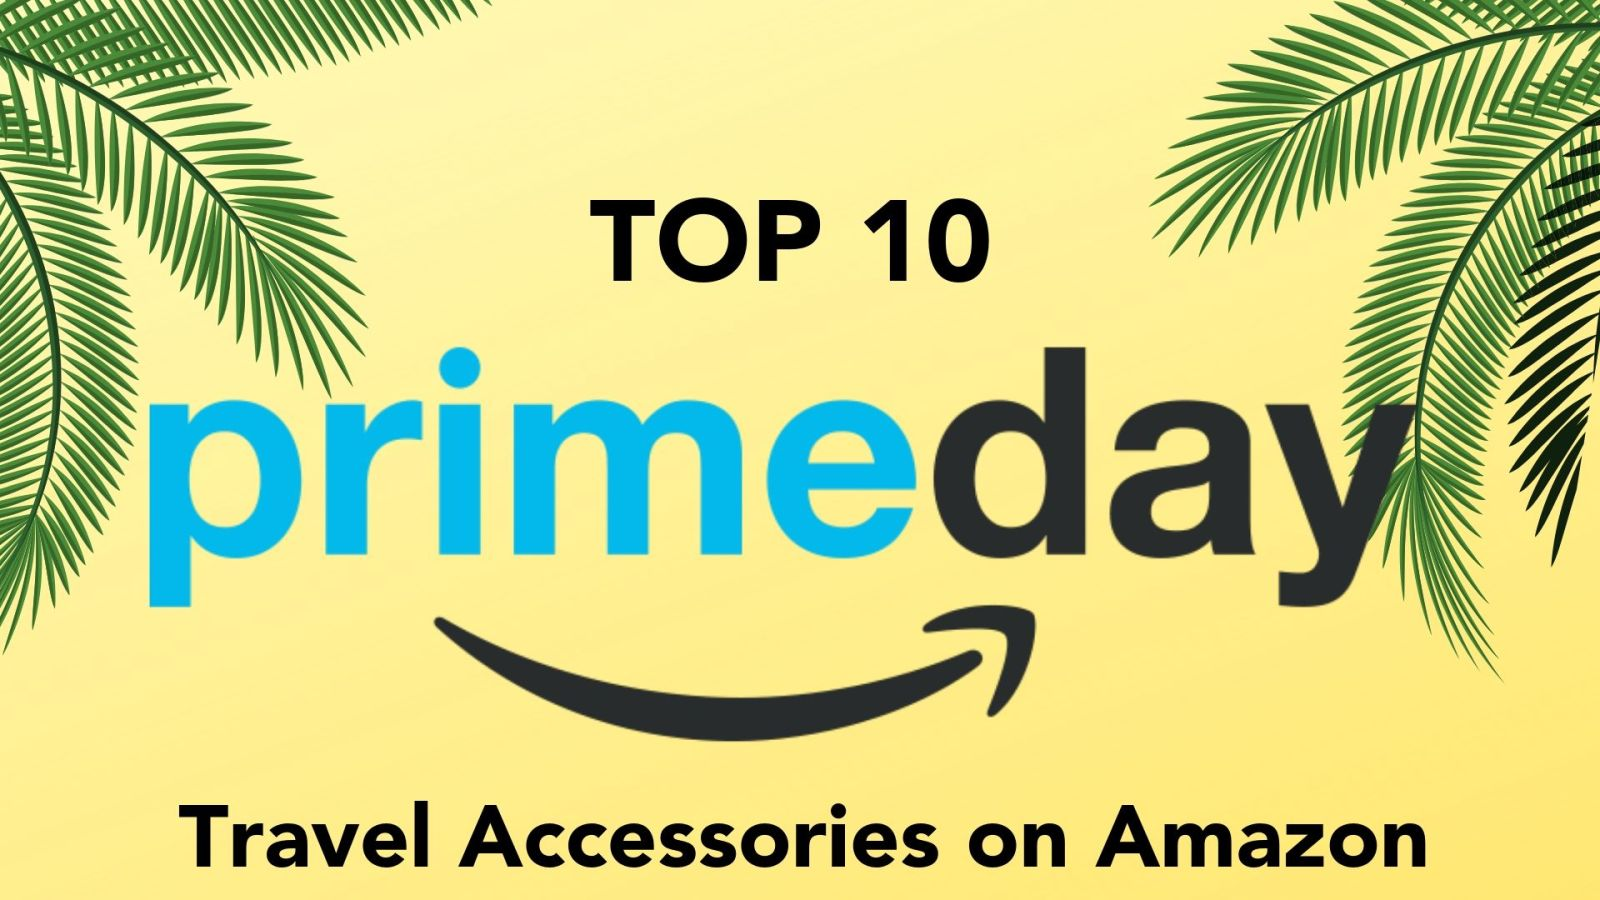 Prime Day Travel Accessories